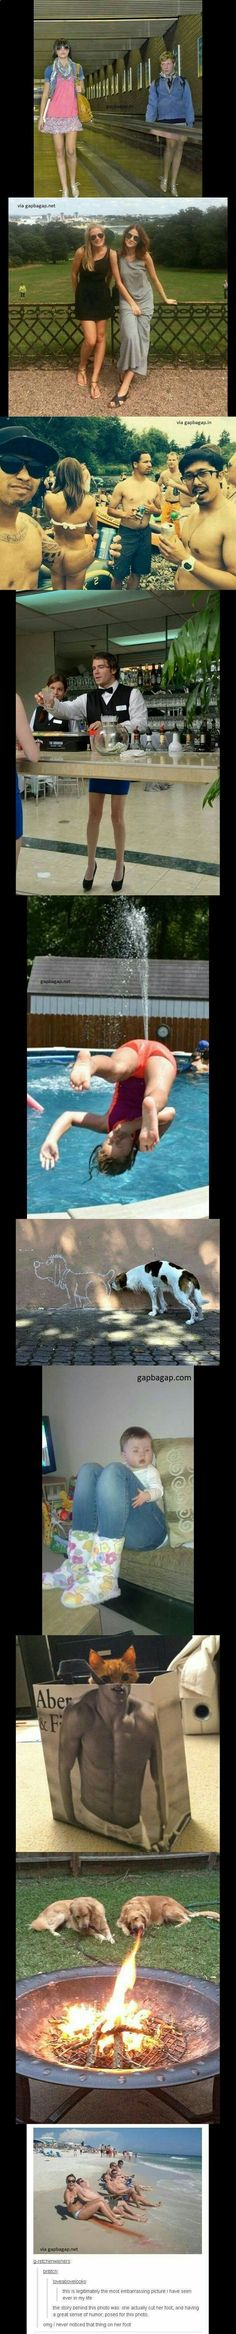 Top 10 Perfectly Timed Photos And The Last One is Hilarious